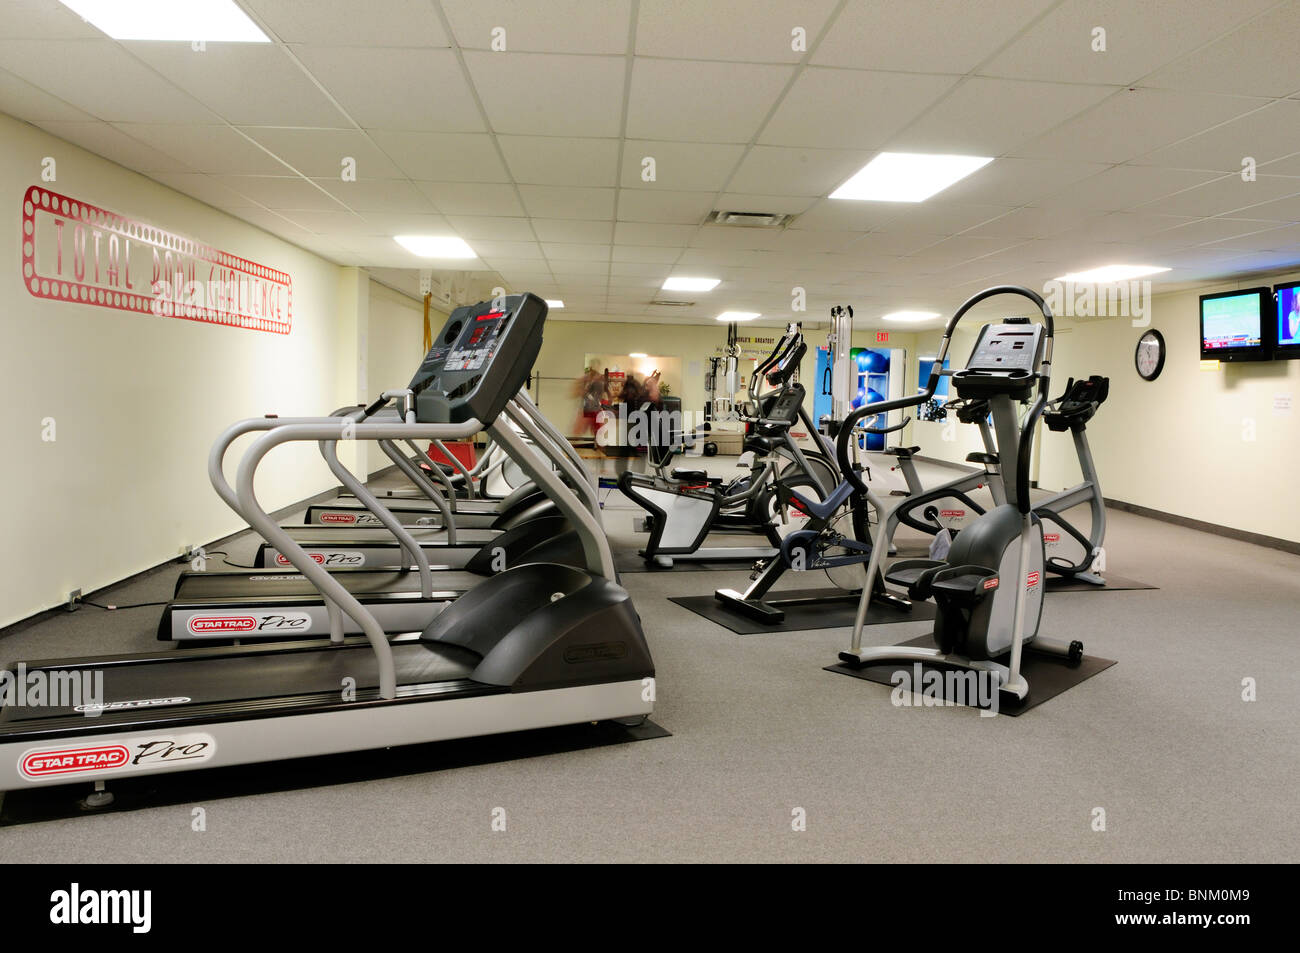 Interior Of A Commercial Gym - Stock Image